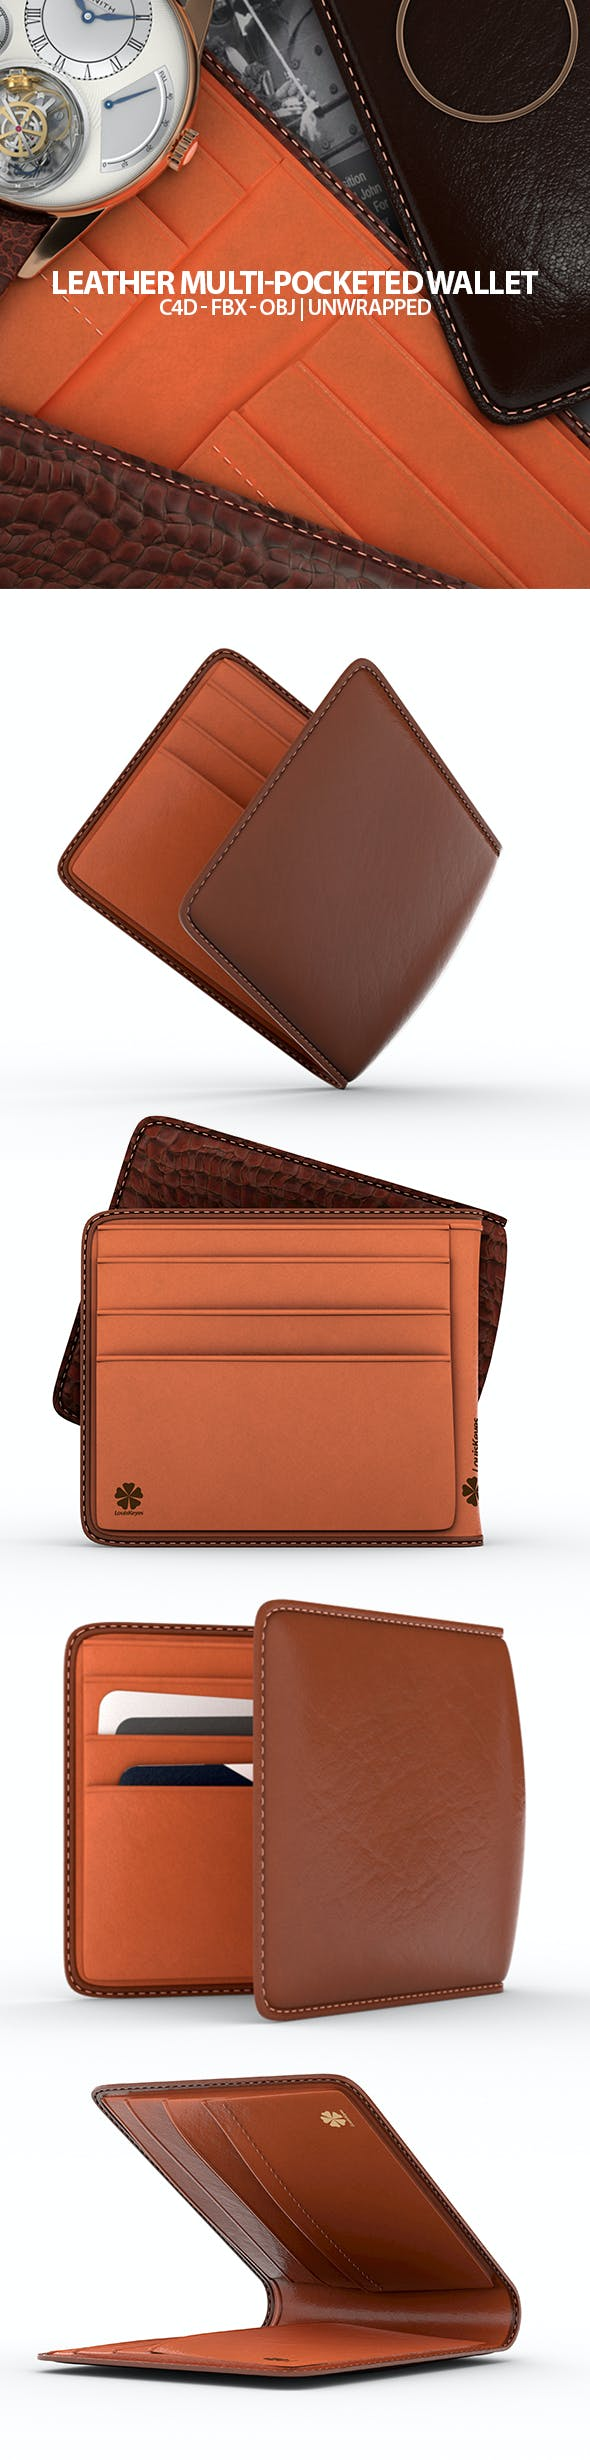 Leather Wallet 3D Model - 3DOcean Item for Sale